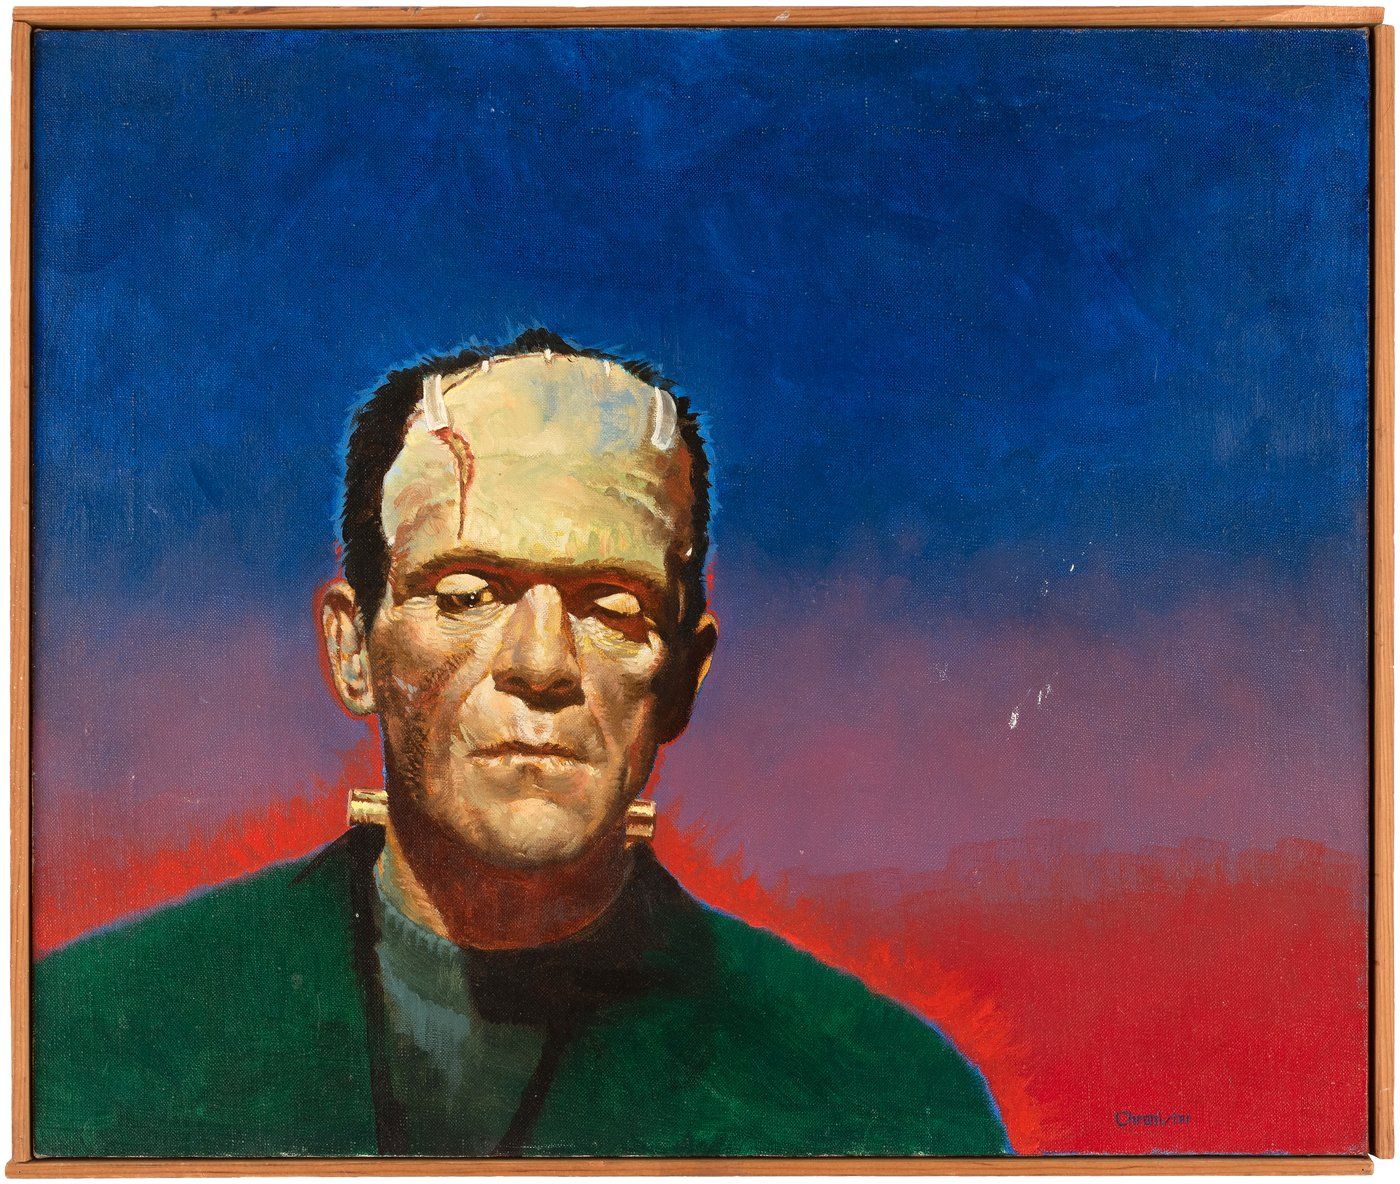 Remco Universal Monster Art, Figures in Hake's Auction